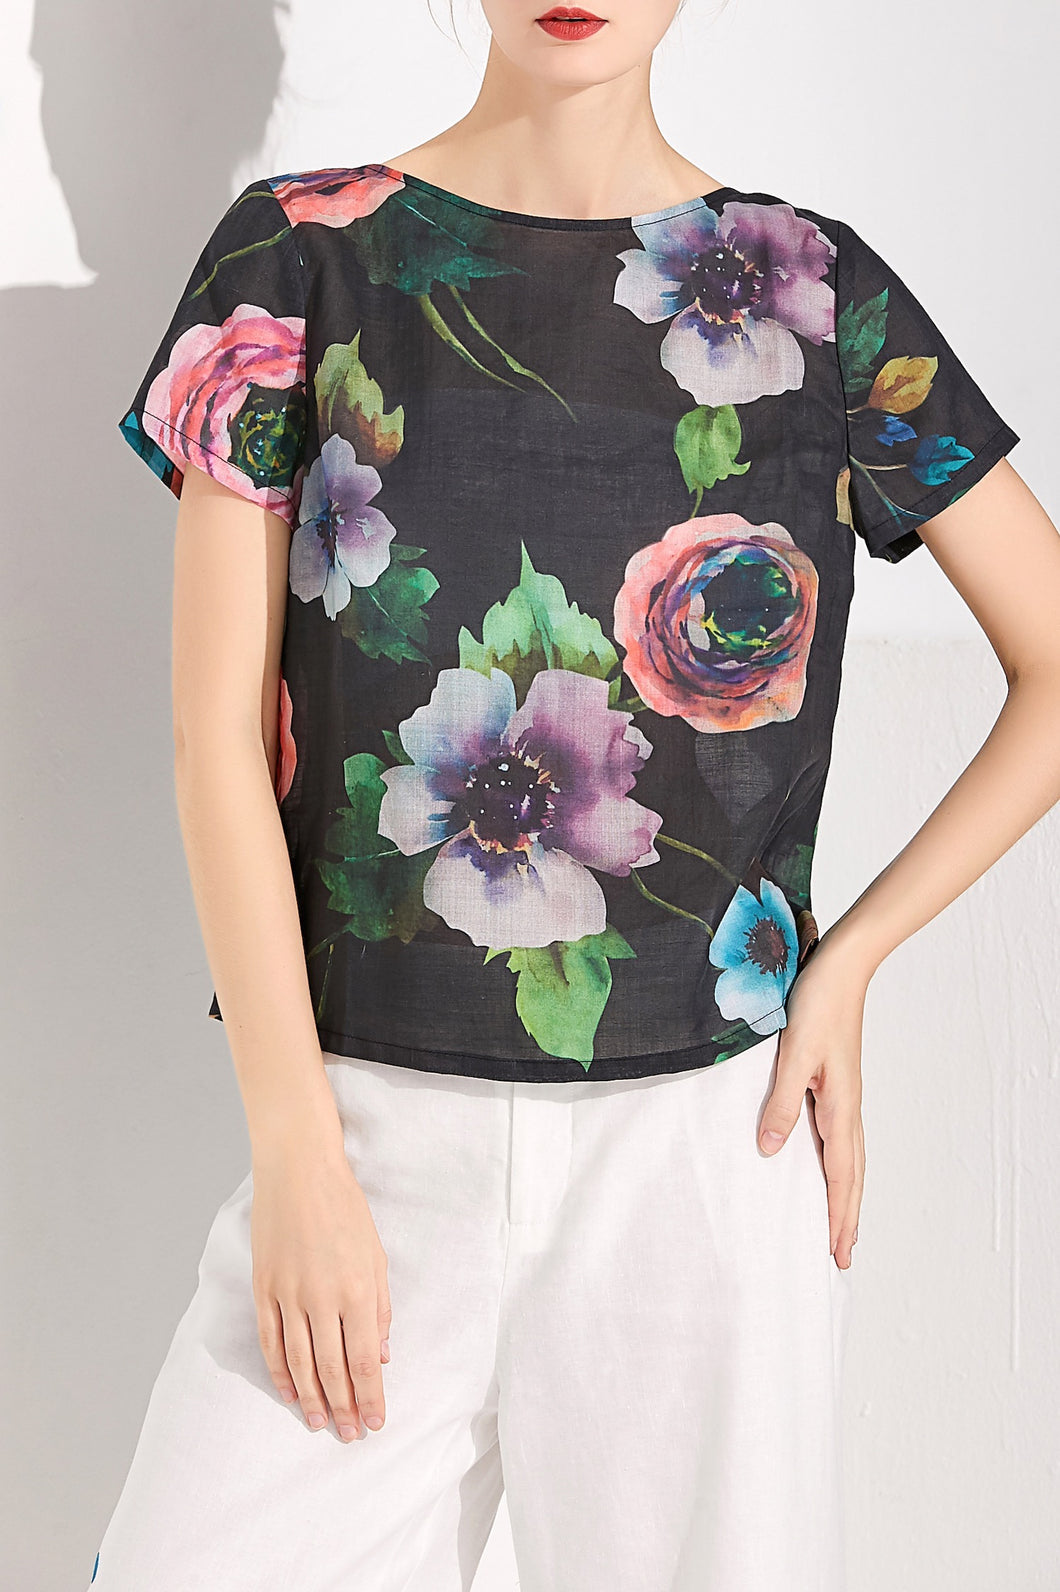 Night Bloom Top by Ja.Socha